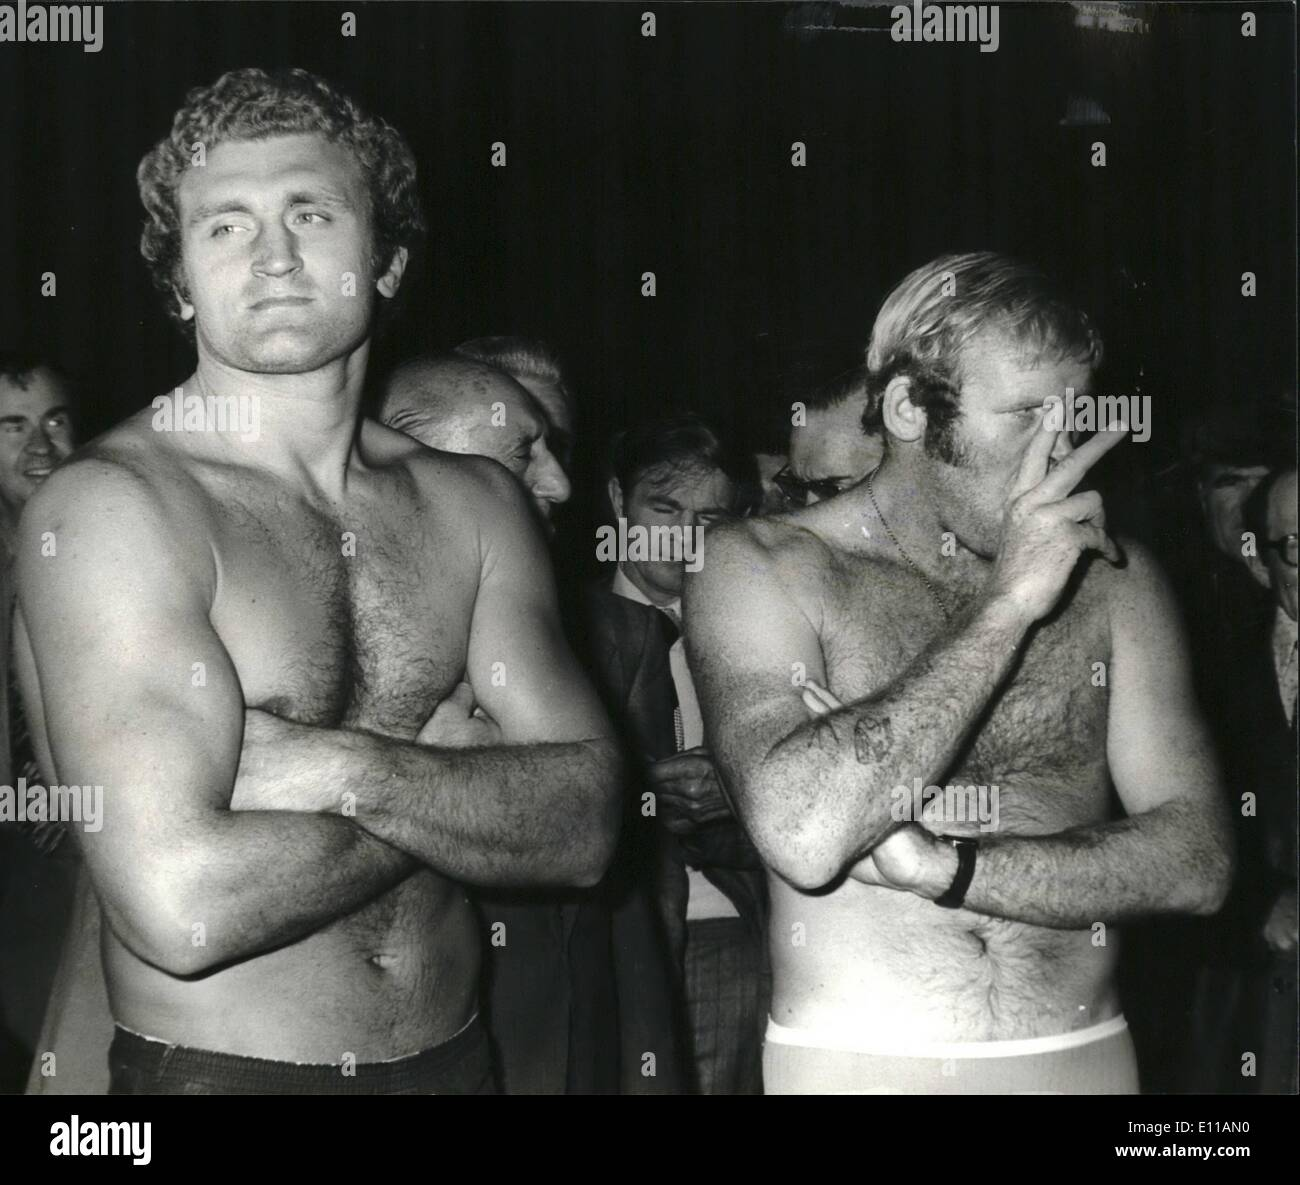 Oct. 10, 1976 - Dune V Bugner weigh in: Photo shows Richard Dunn, The British, Commonwealth, and European champion, seems to be - Stock Image